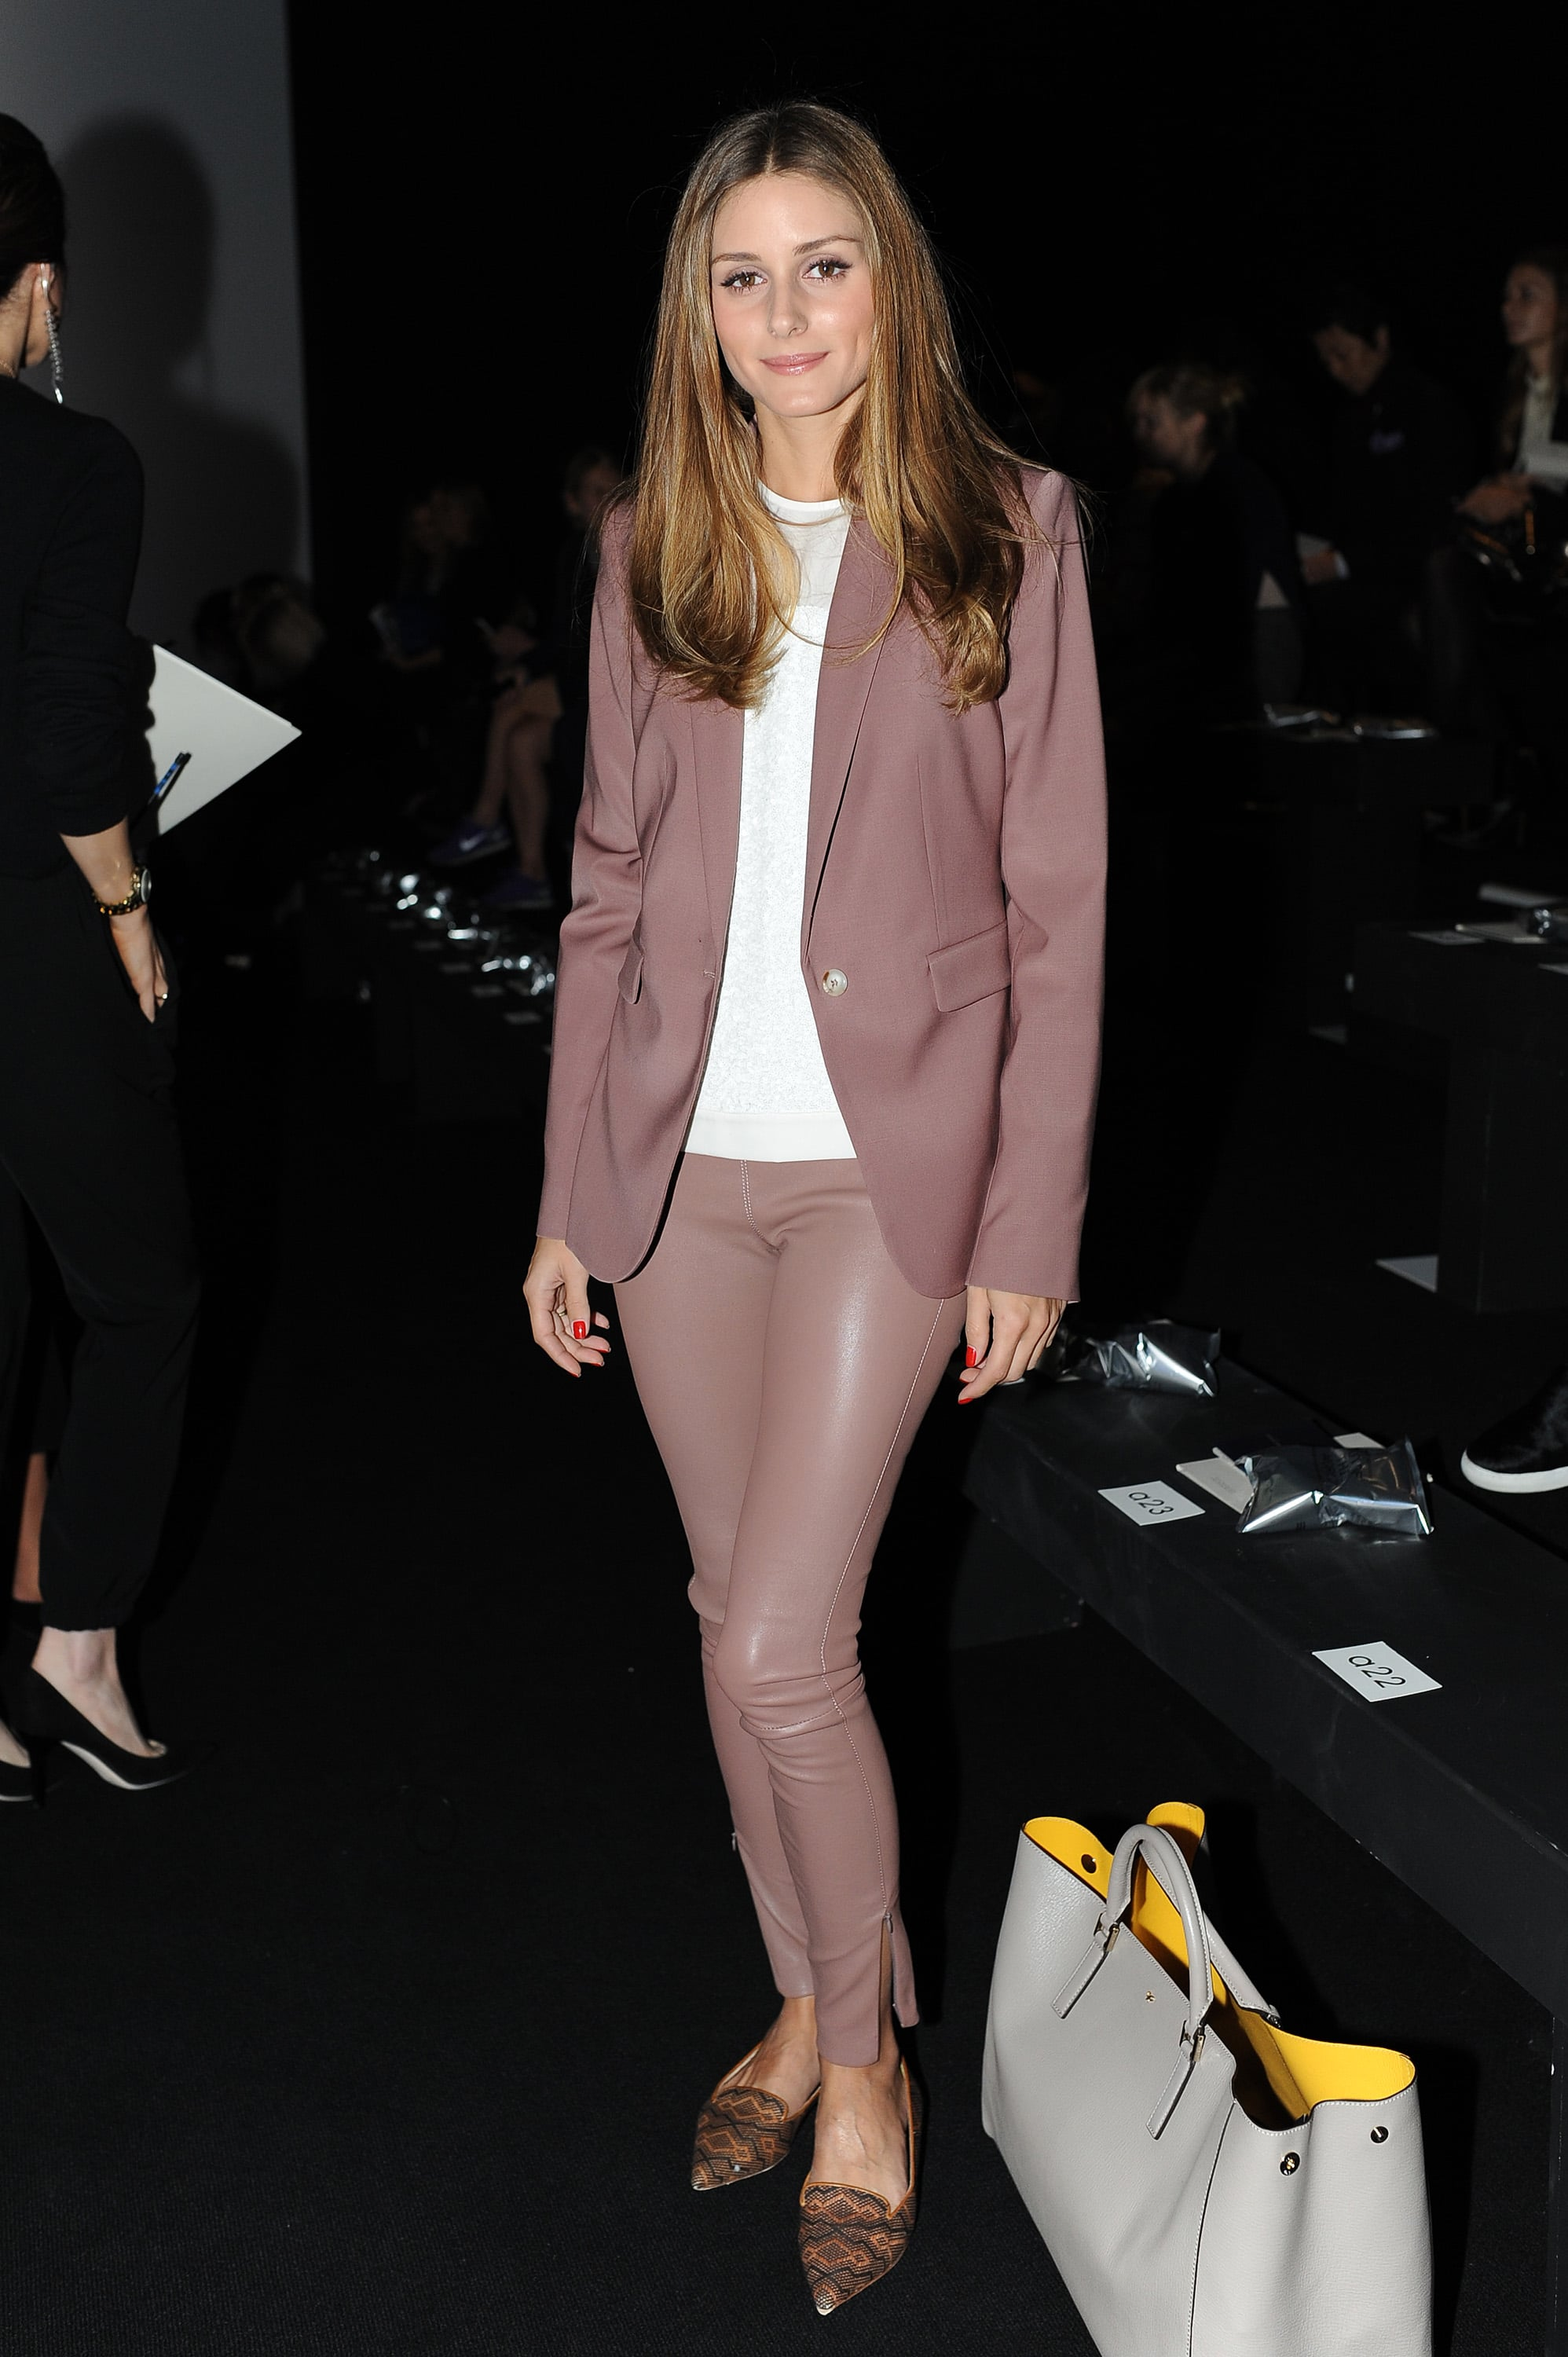 Olivia Palermo's monochromatic mauve made us want to pick up a pair of purple leather leggings at the Anya Hindmarch London Fashion Week show.